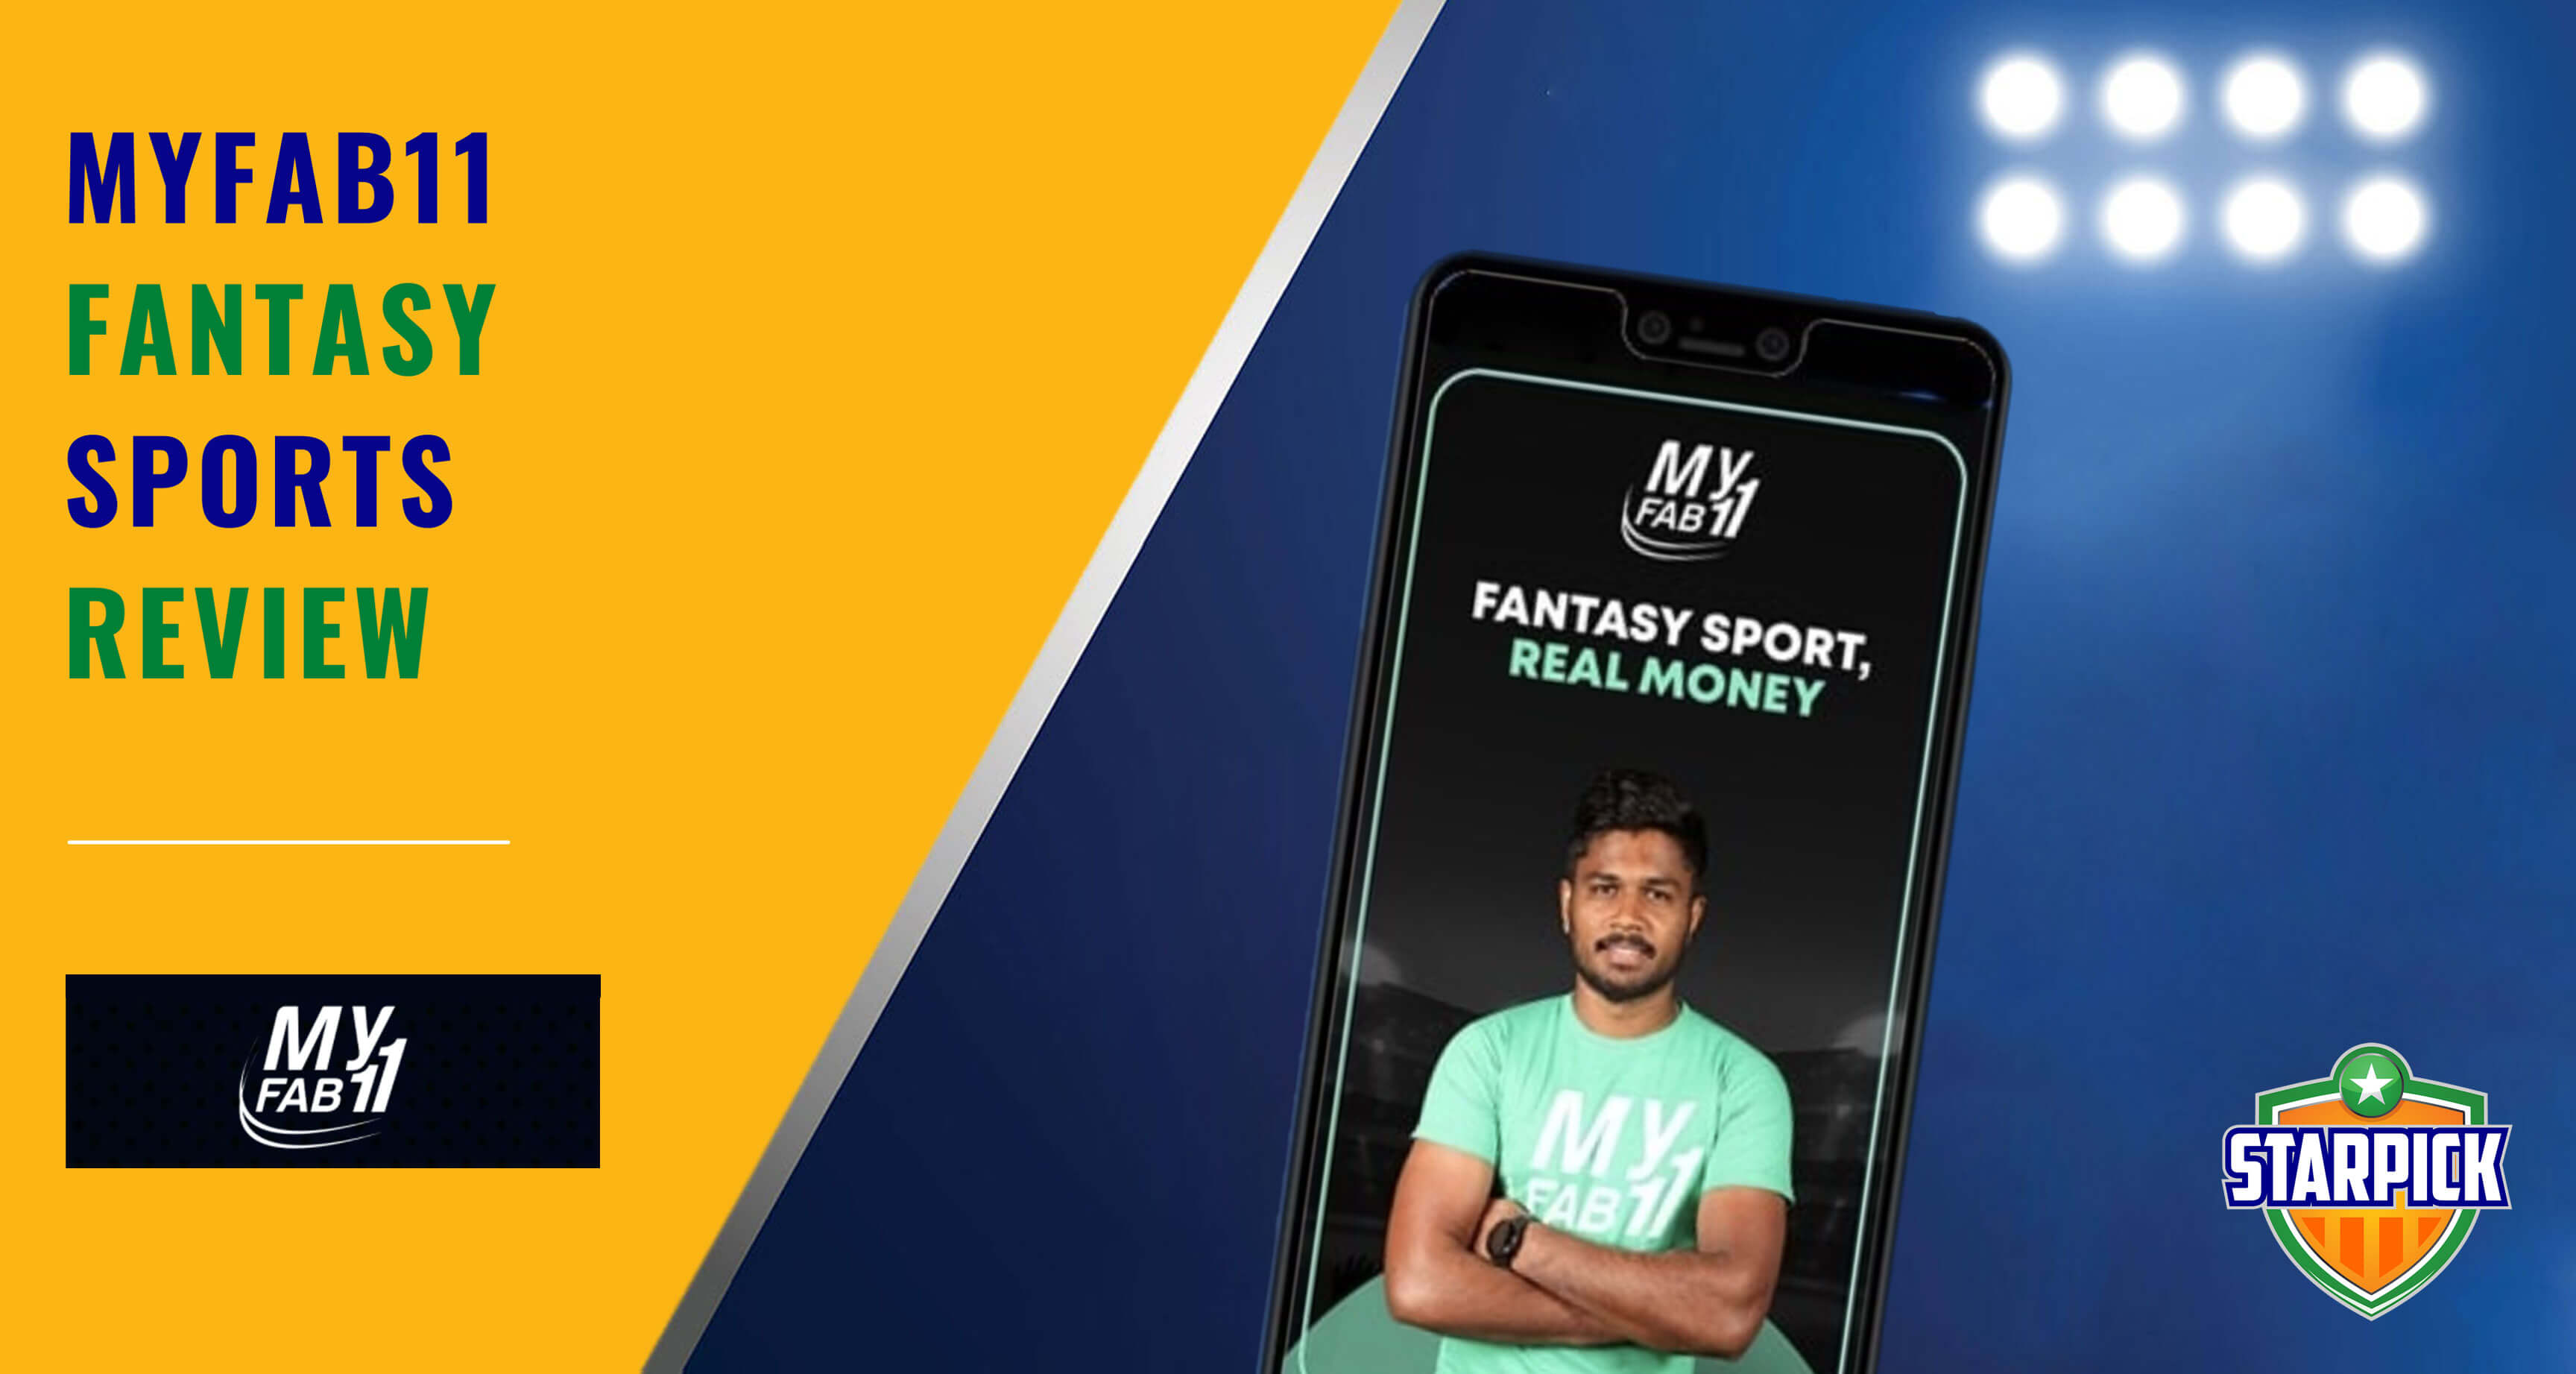 Myfab11 Fantasy Sports Review